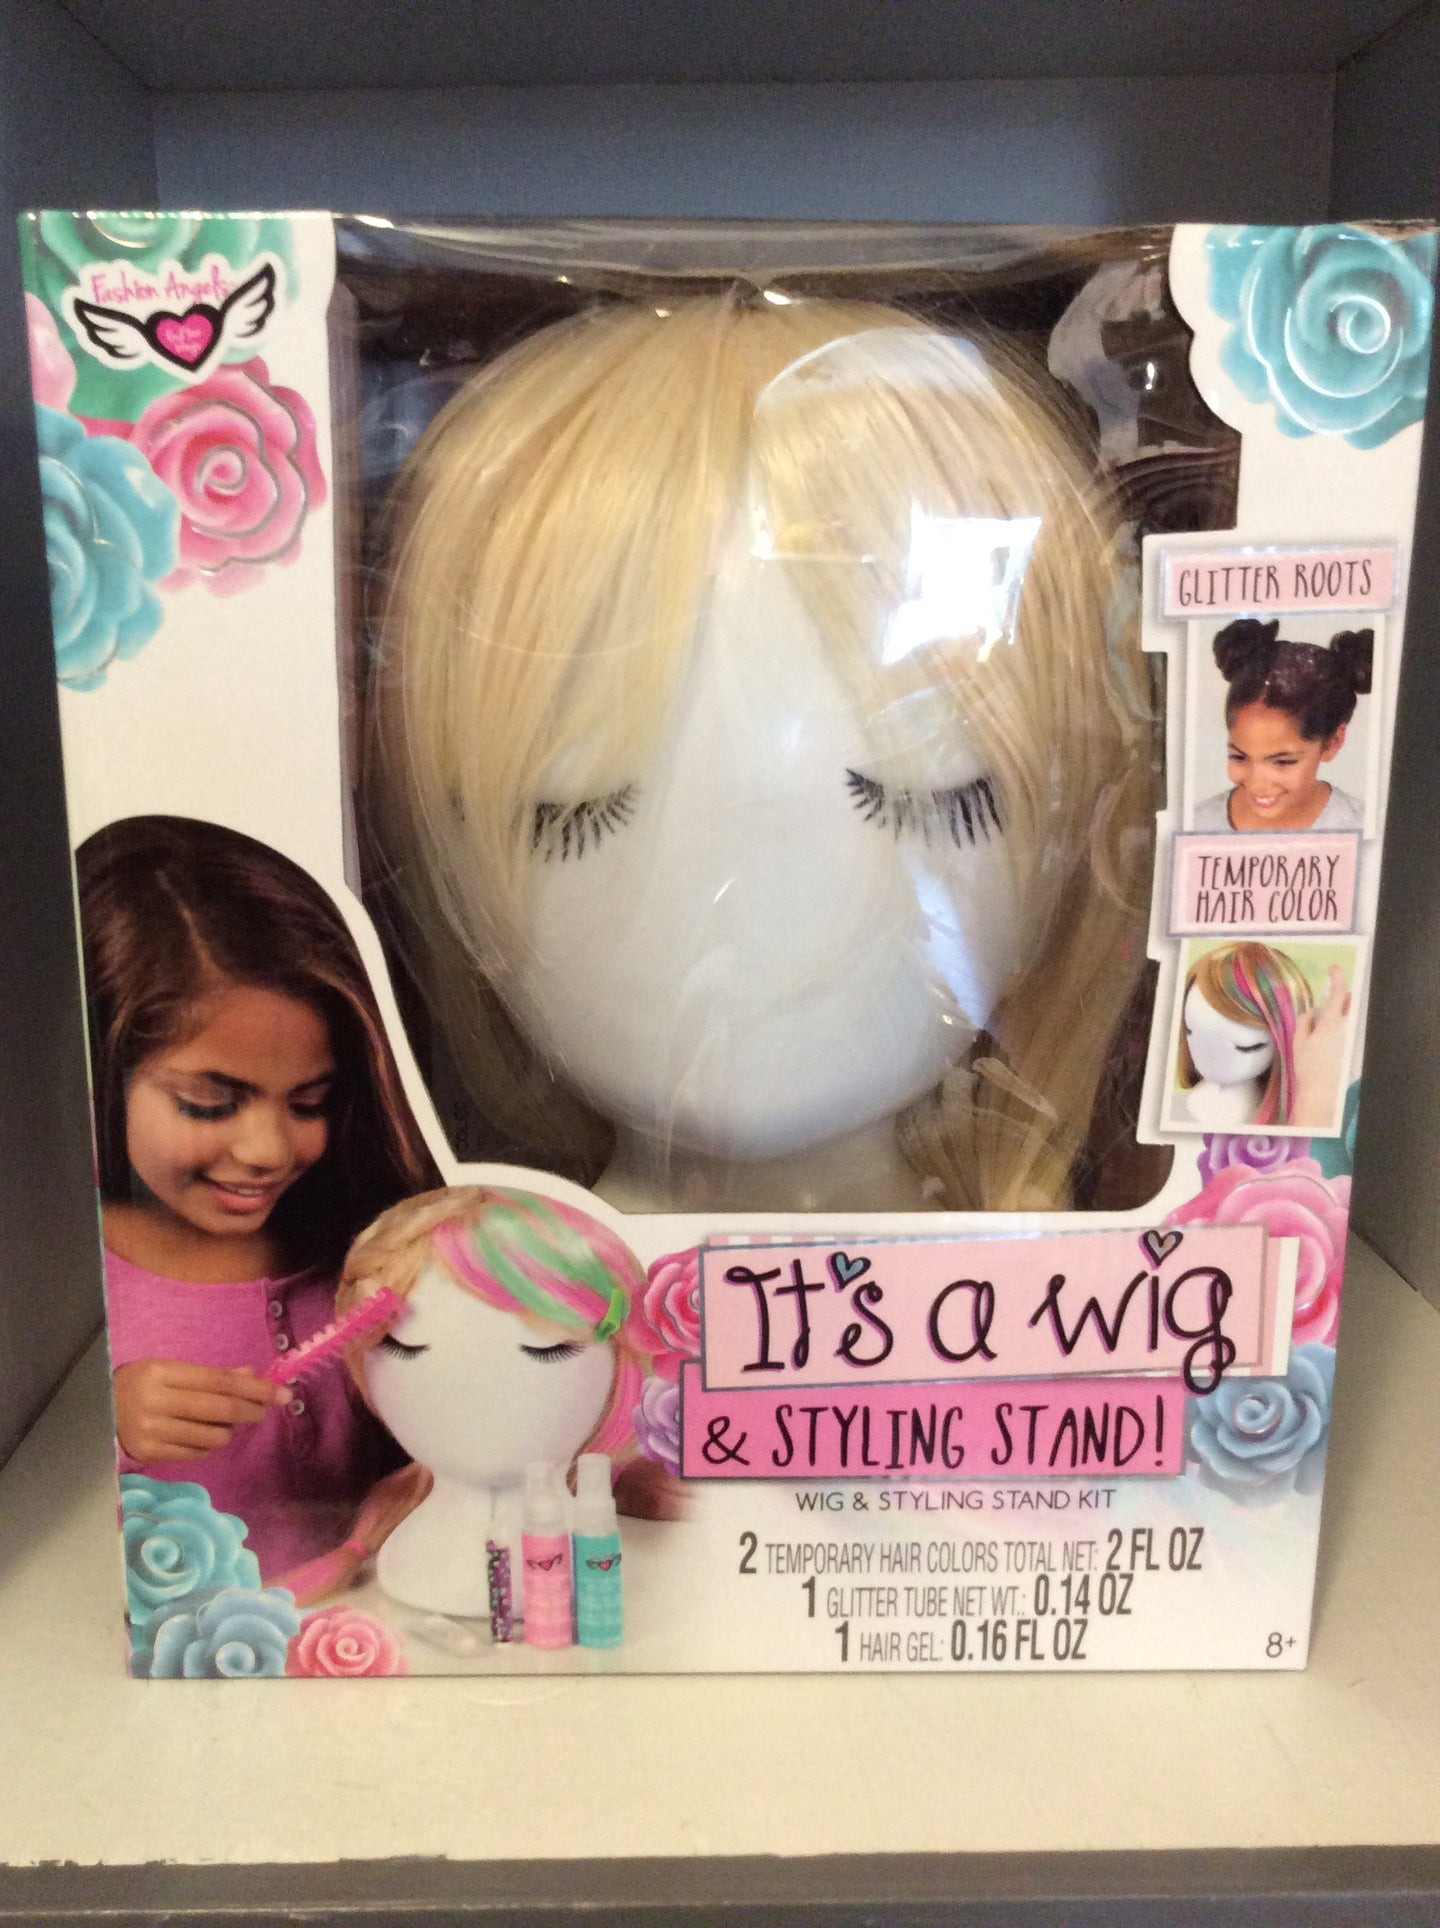 Wig and styling stand kit